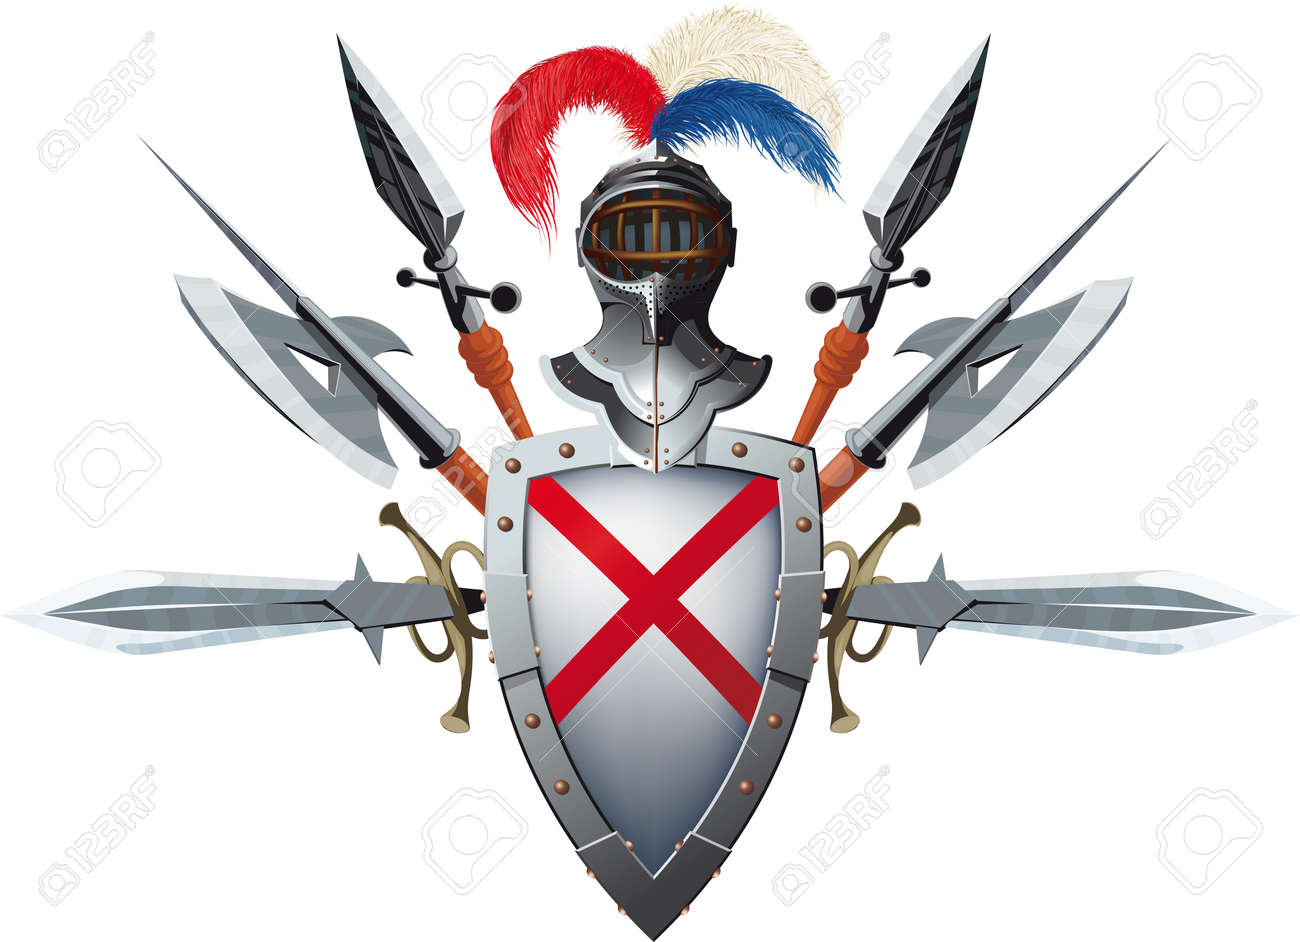 Knight's Mascot With Shield, Helmet And Bristling With Weapons ...